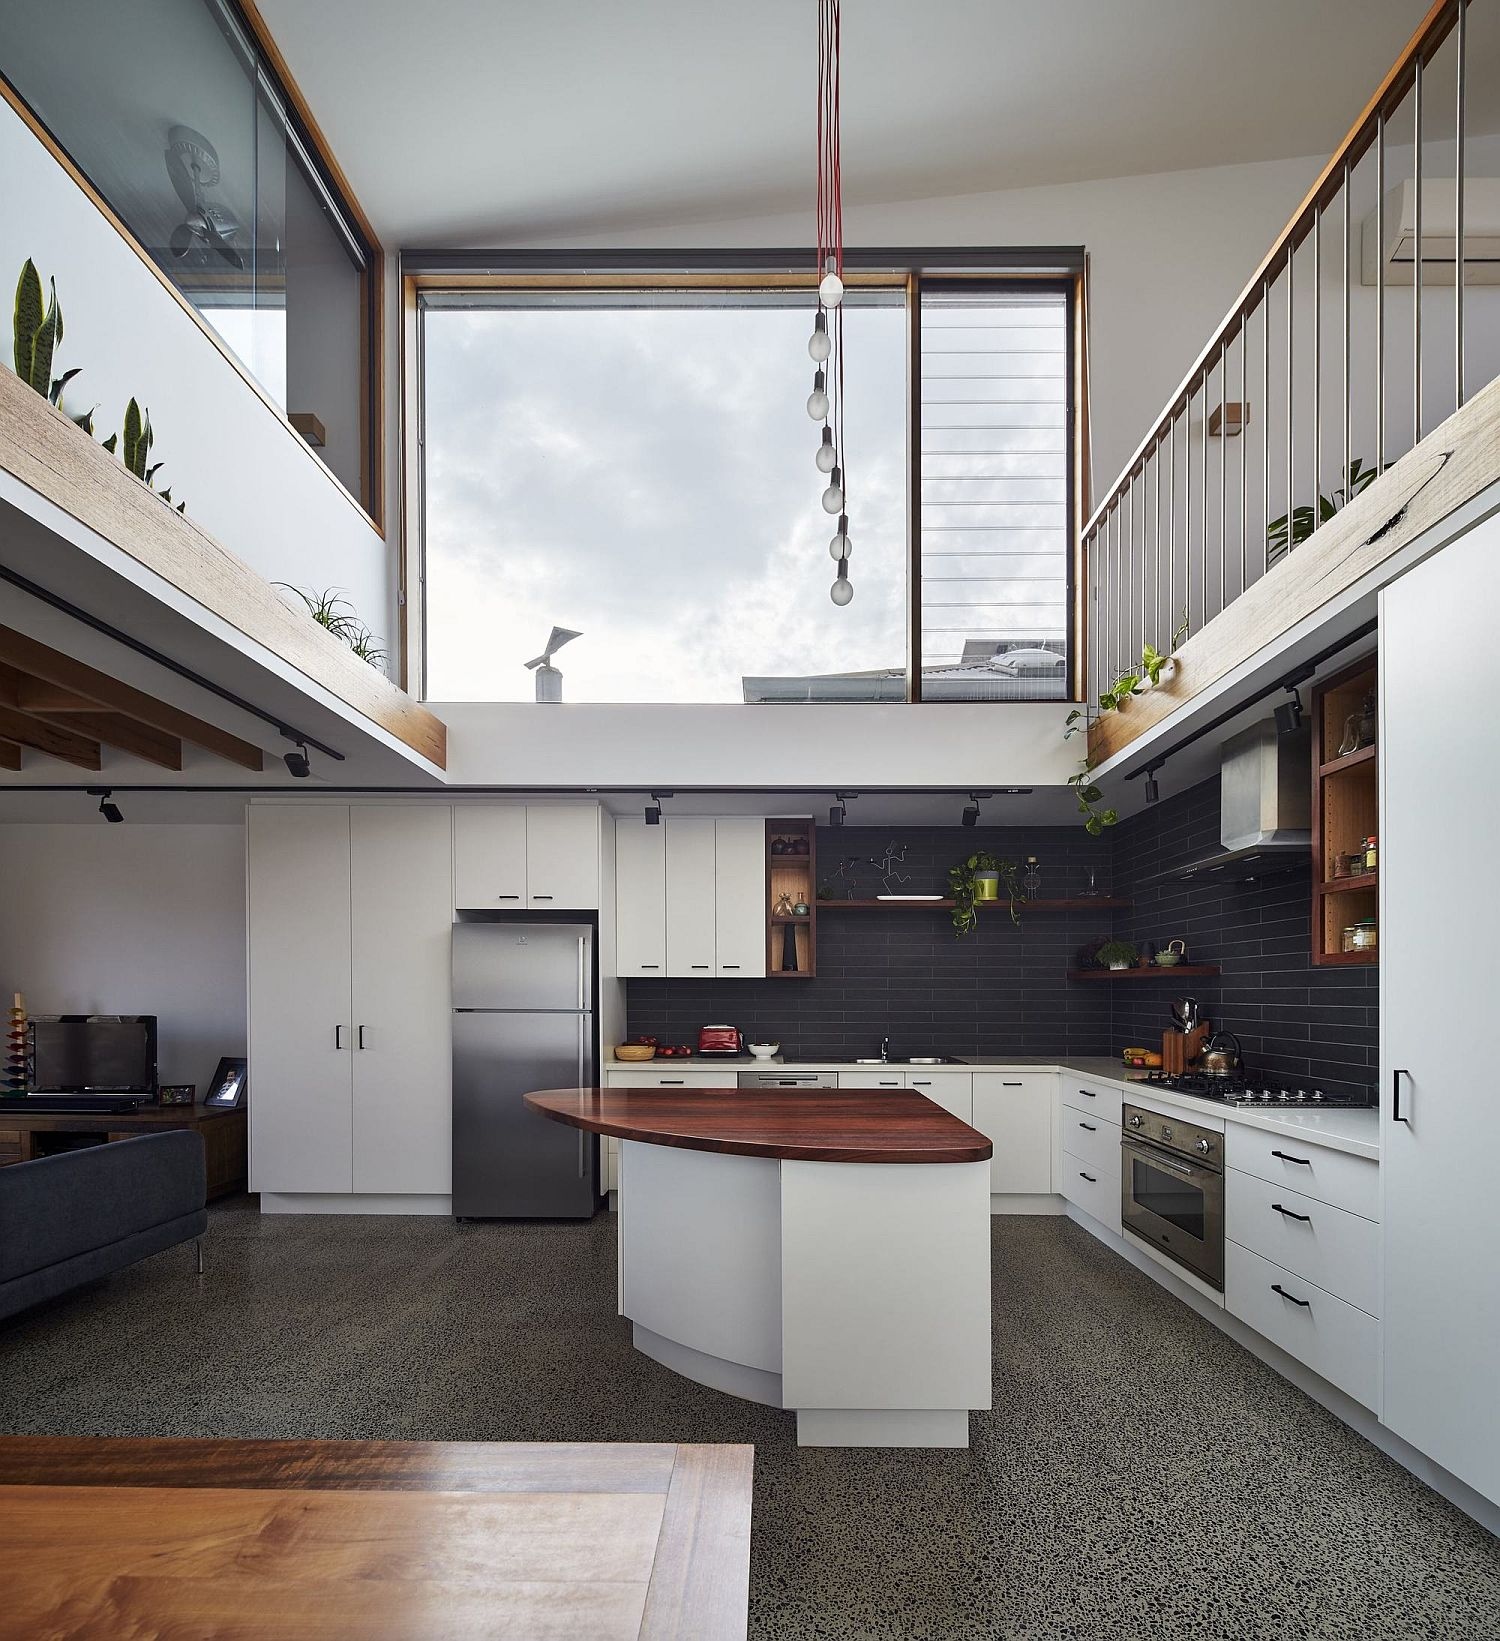 Central-void-of-the-house-with-kitchen-and-an-angular-island